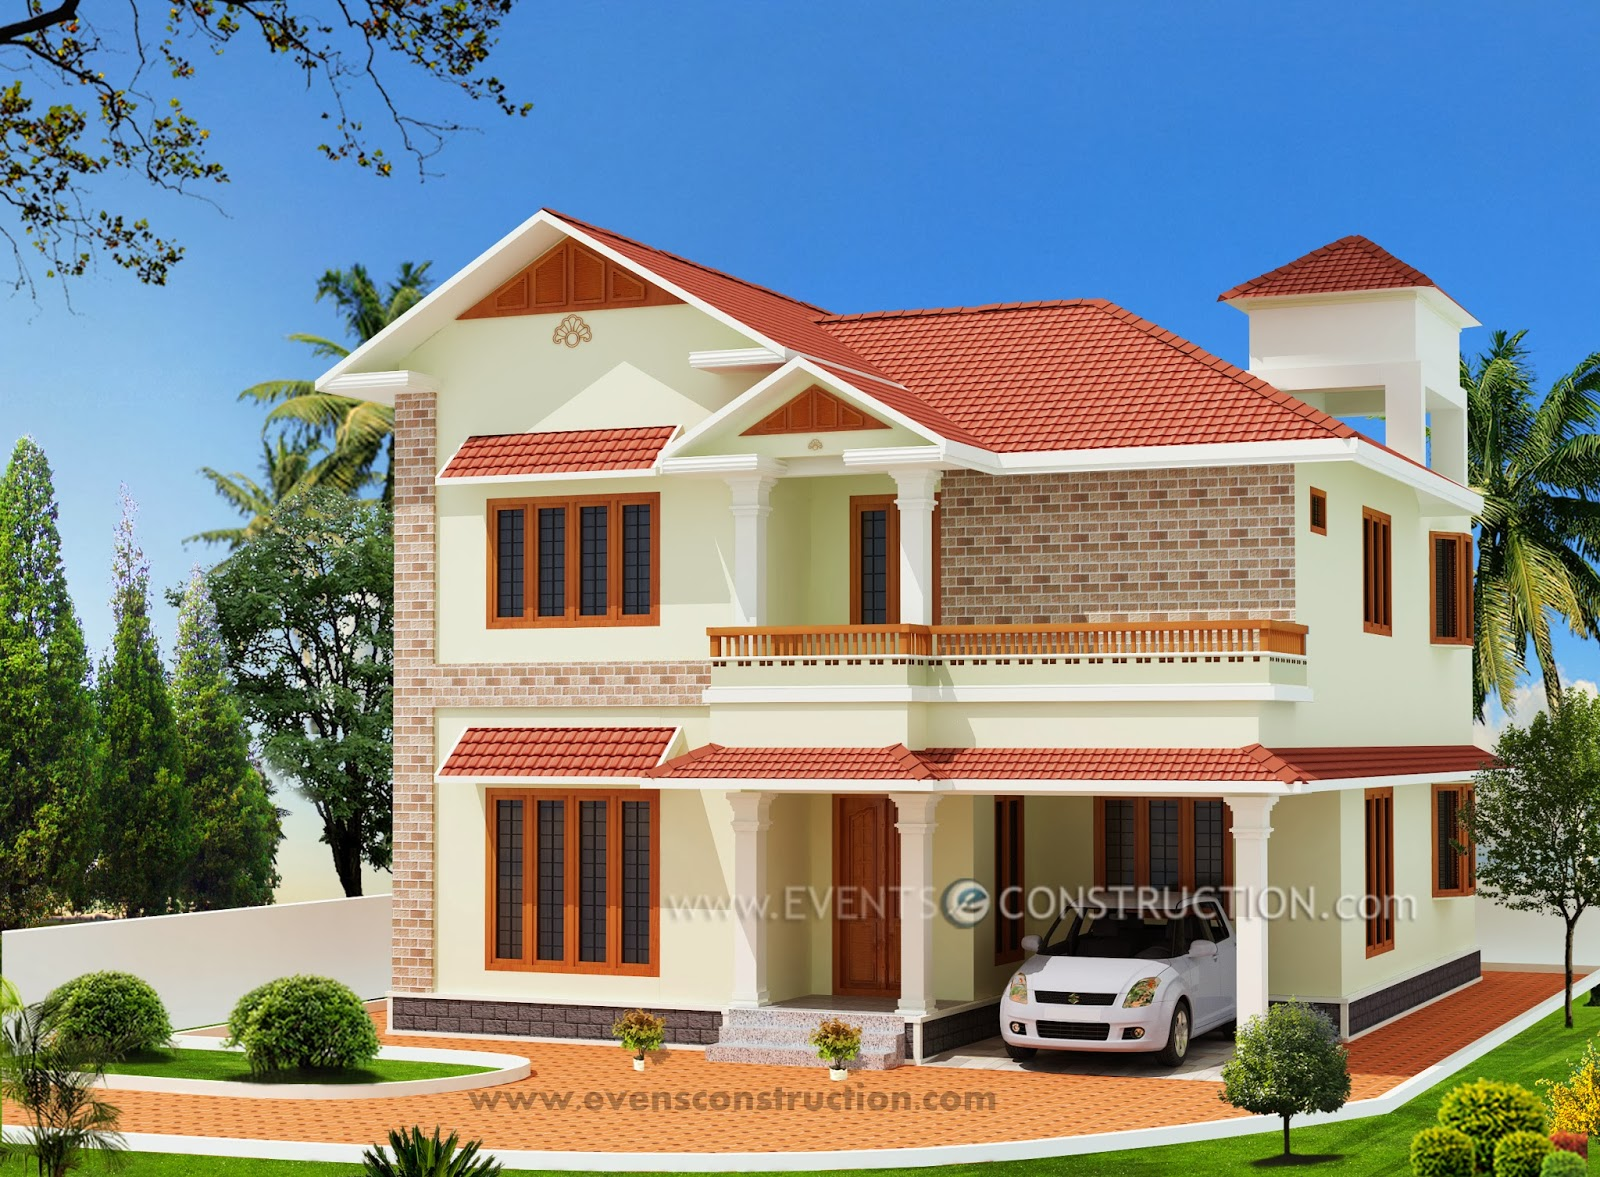 Evens Construction Pvt Ltd: NEW KERALA HOUSE SAMPLES 2013 ( 3D ...